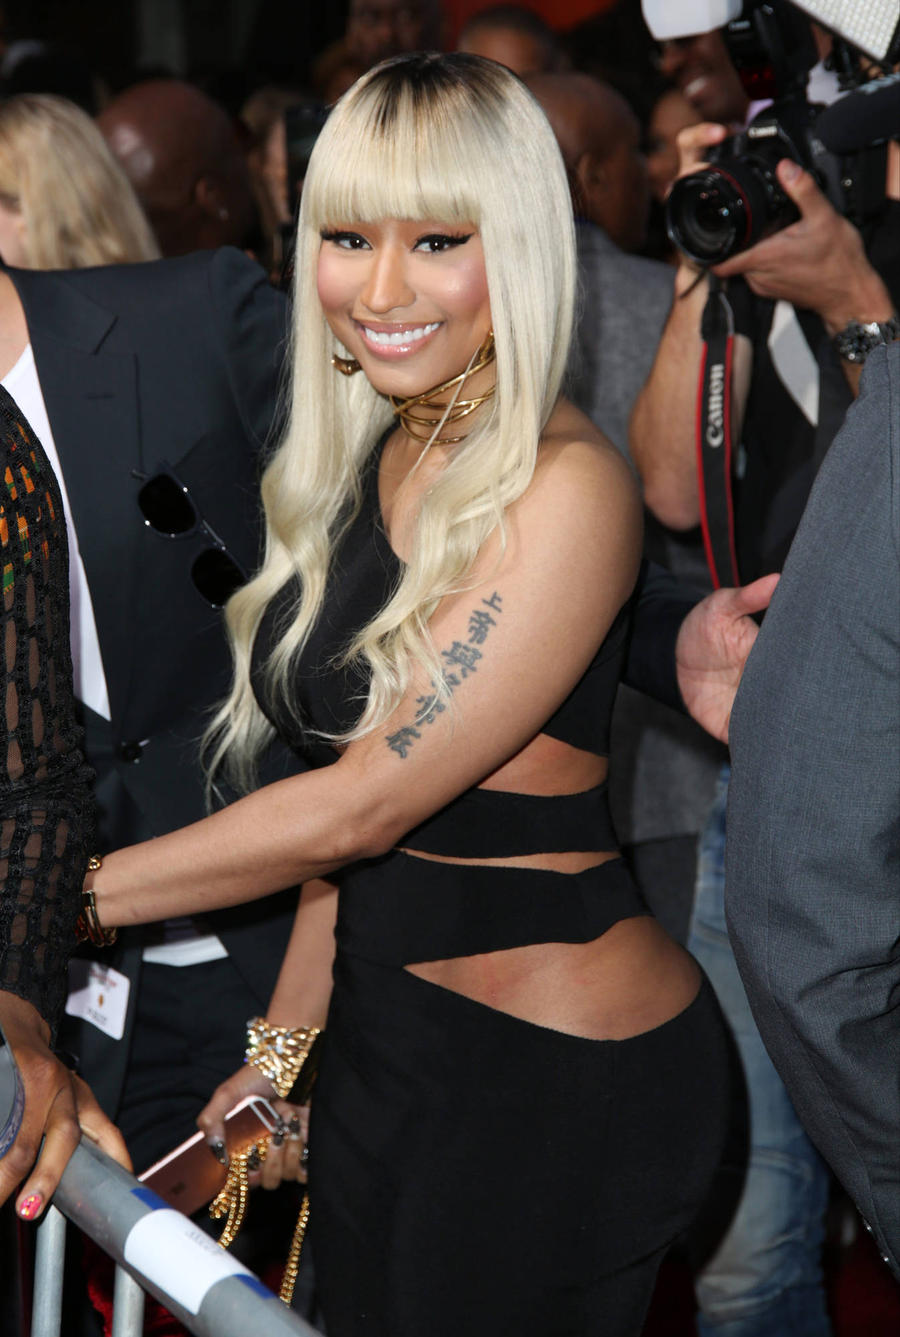 Nicki Minaj: 'I Don't Want To Be Mean To People Anymore!'